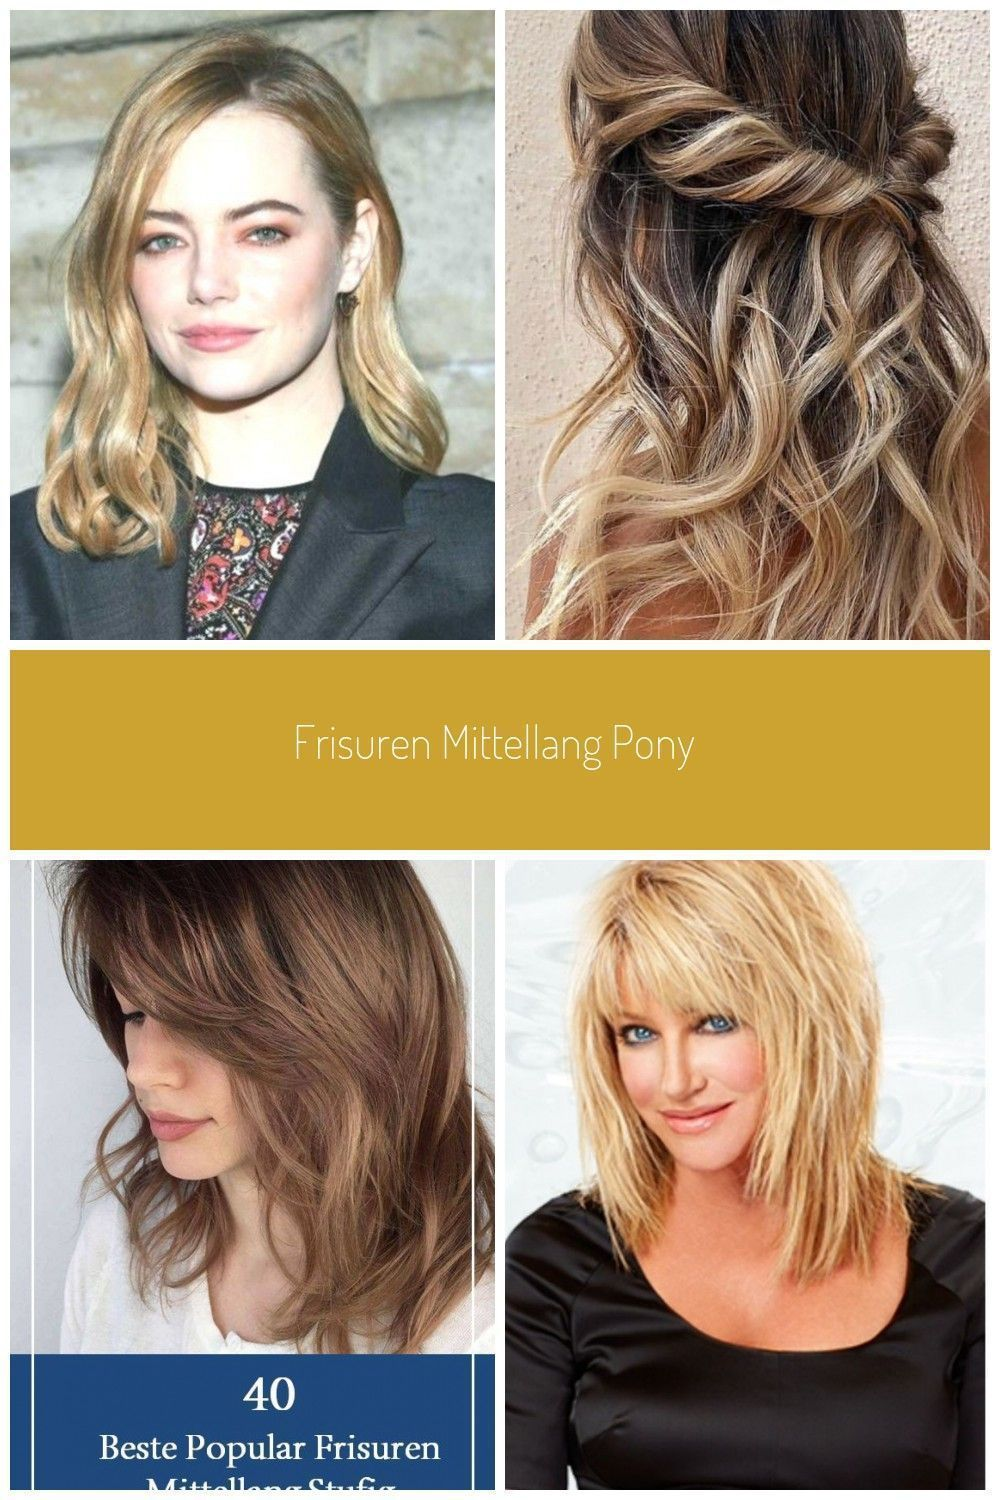 Frisuren Mittellang Pony Rundes Gesicht Frisuren Mittellang Stufig Mit Schrag Frisuren Mittellang Pony Rundes Gesich In 2020 Long Hair Styles Hair Styles Beauty